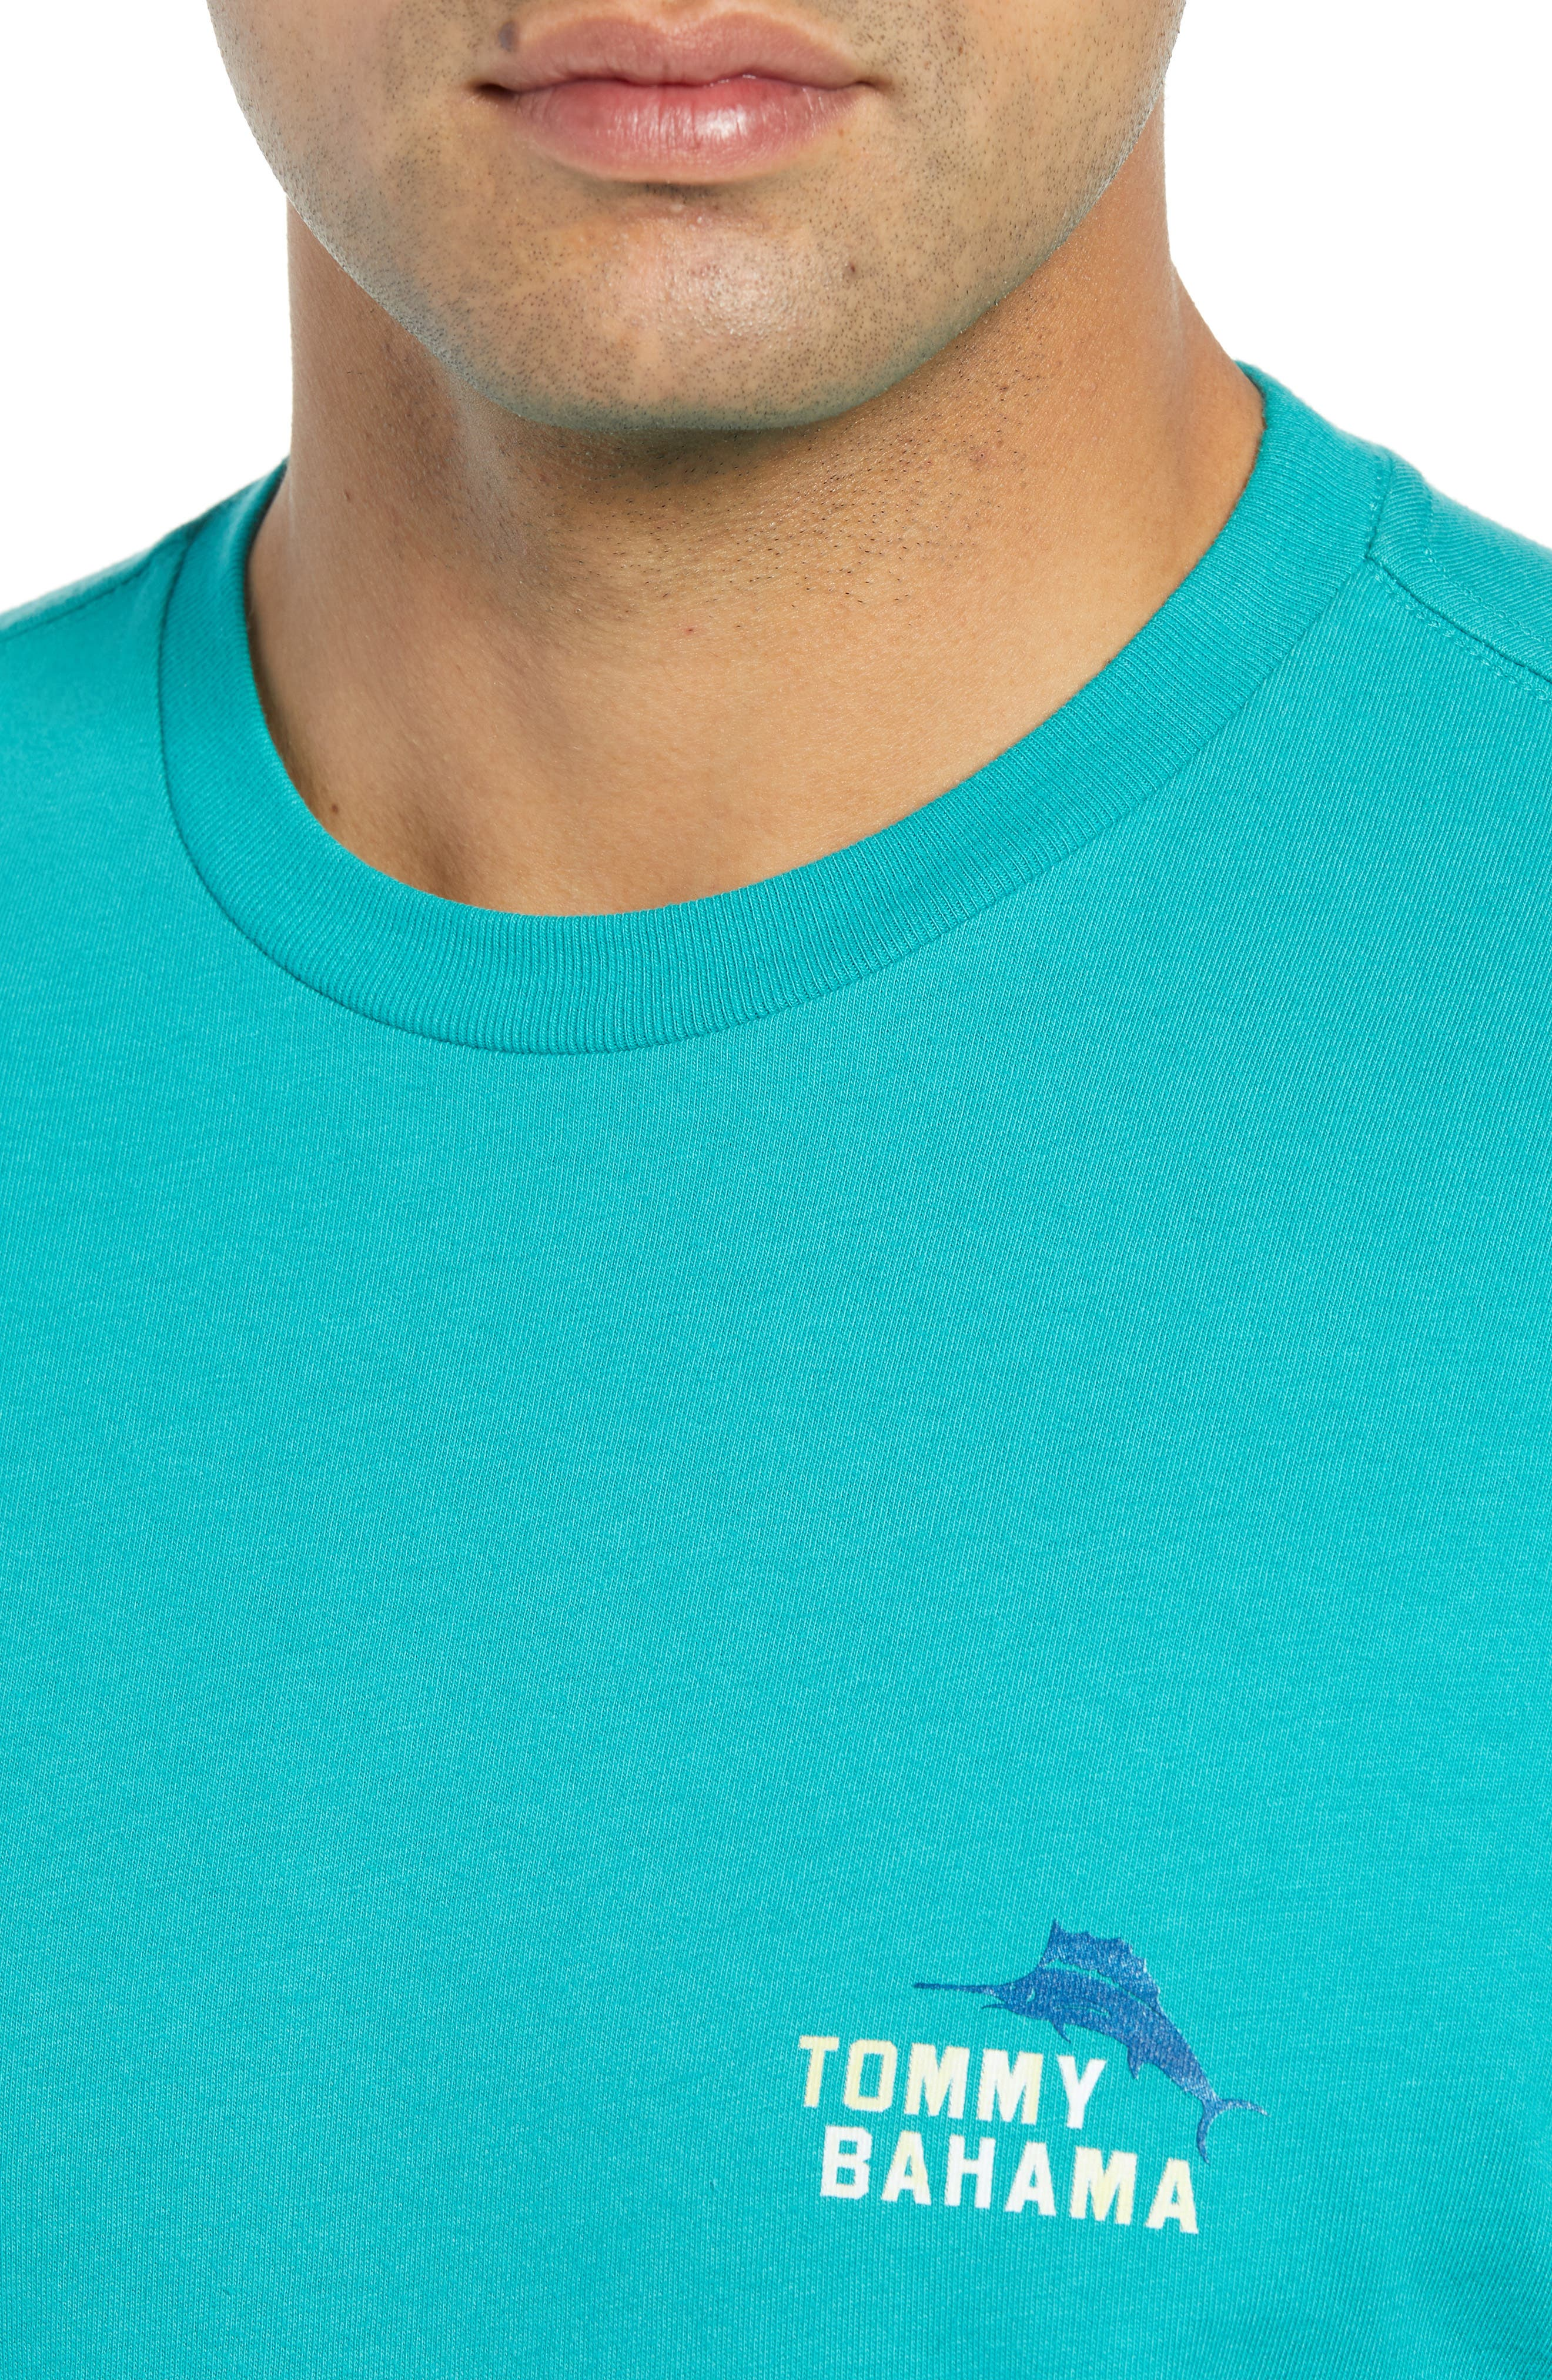 Between the Uprights Graphic T-Shirt,                             Alternate thumbnail 4, color,                             GULF SHORE